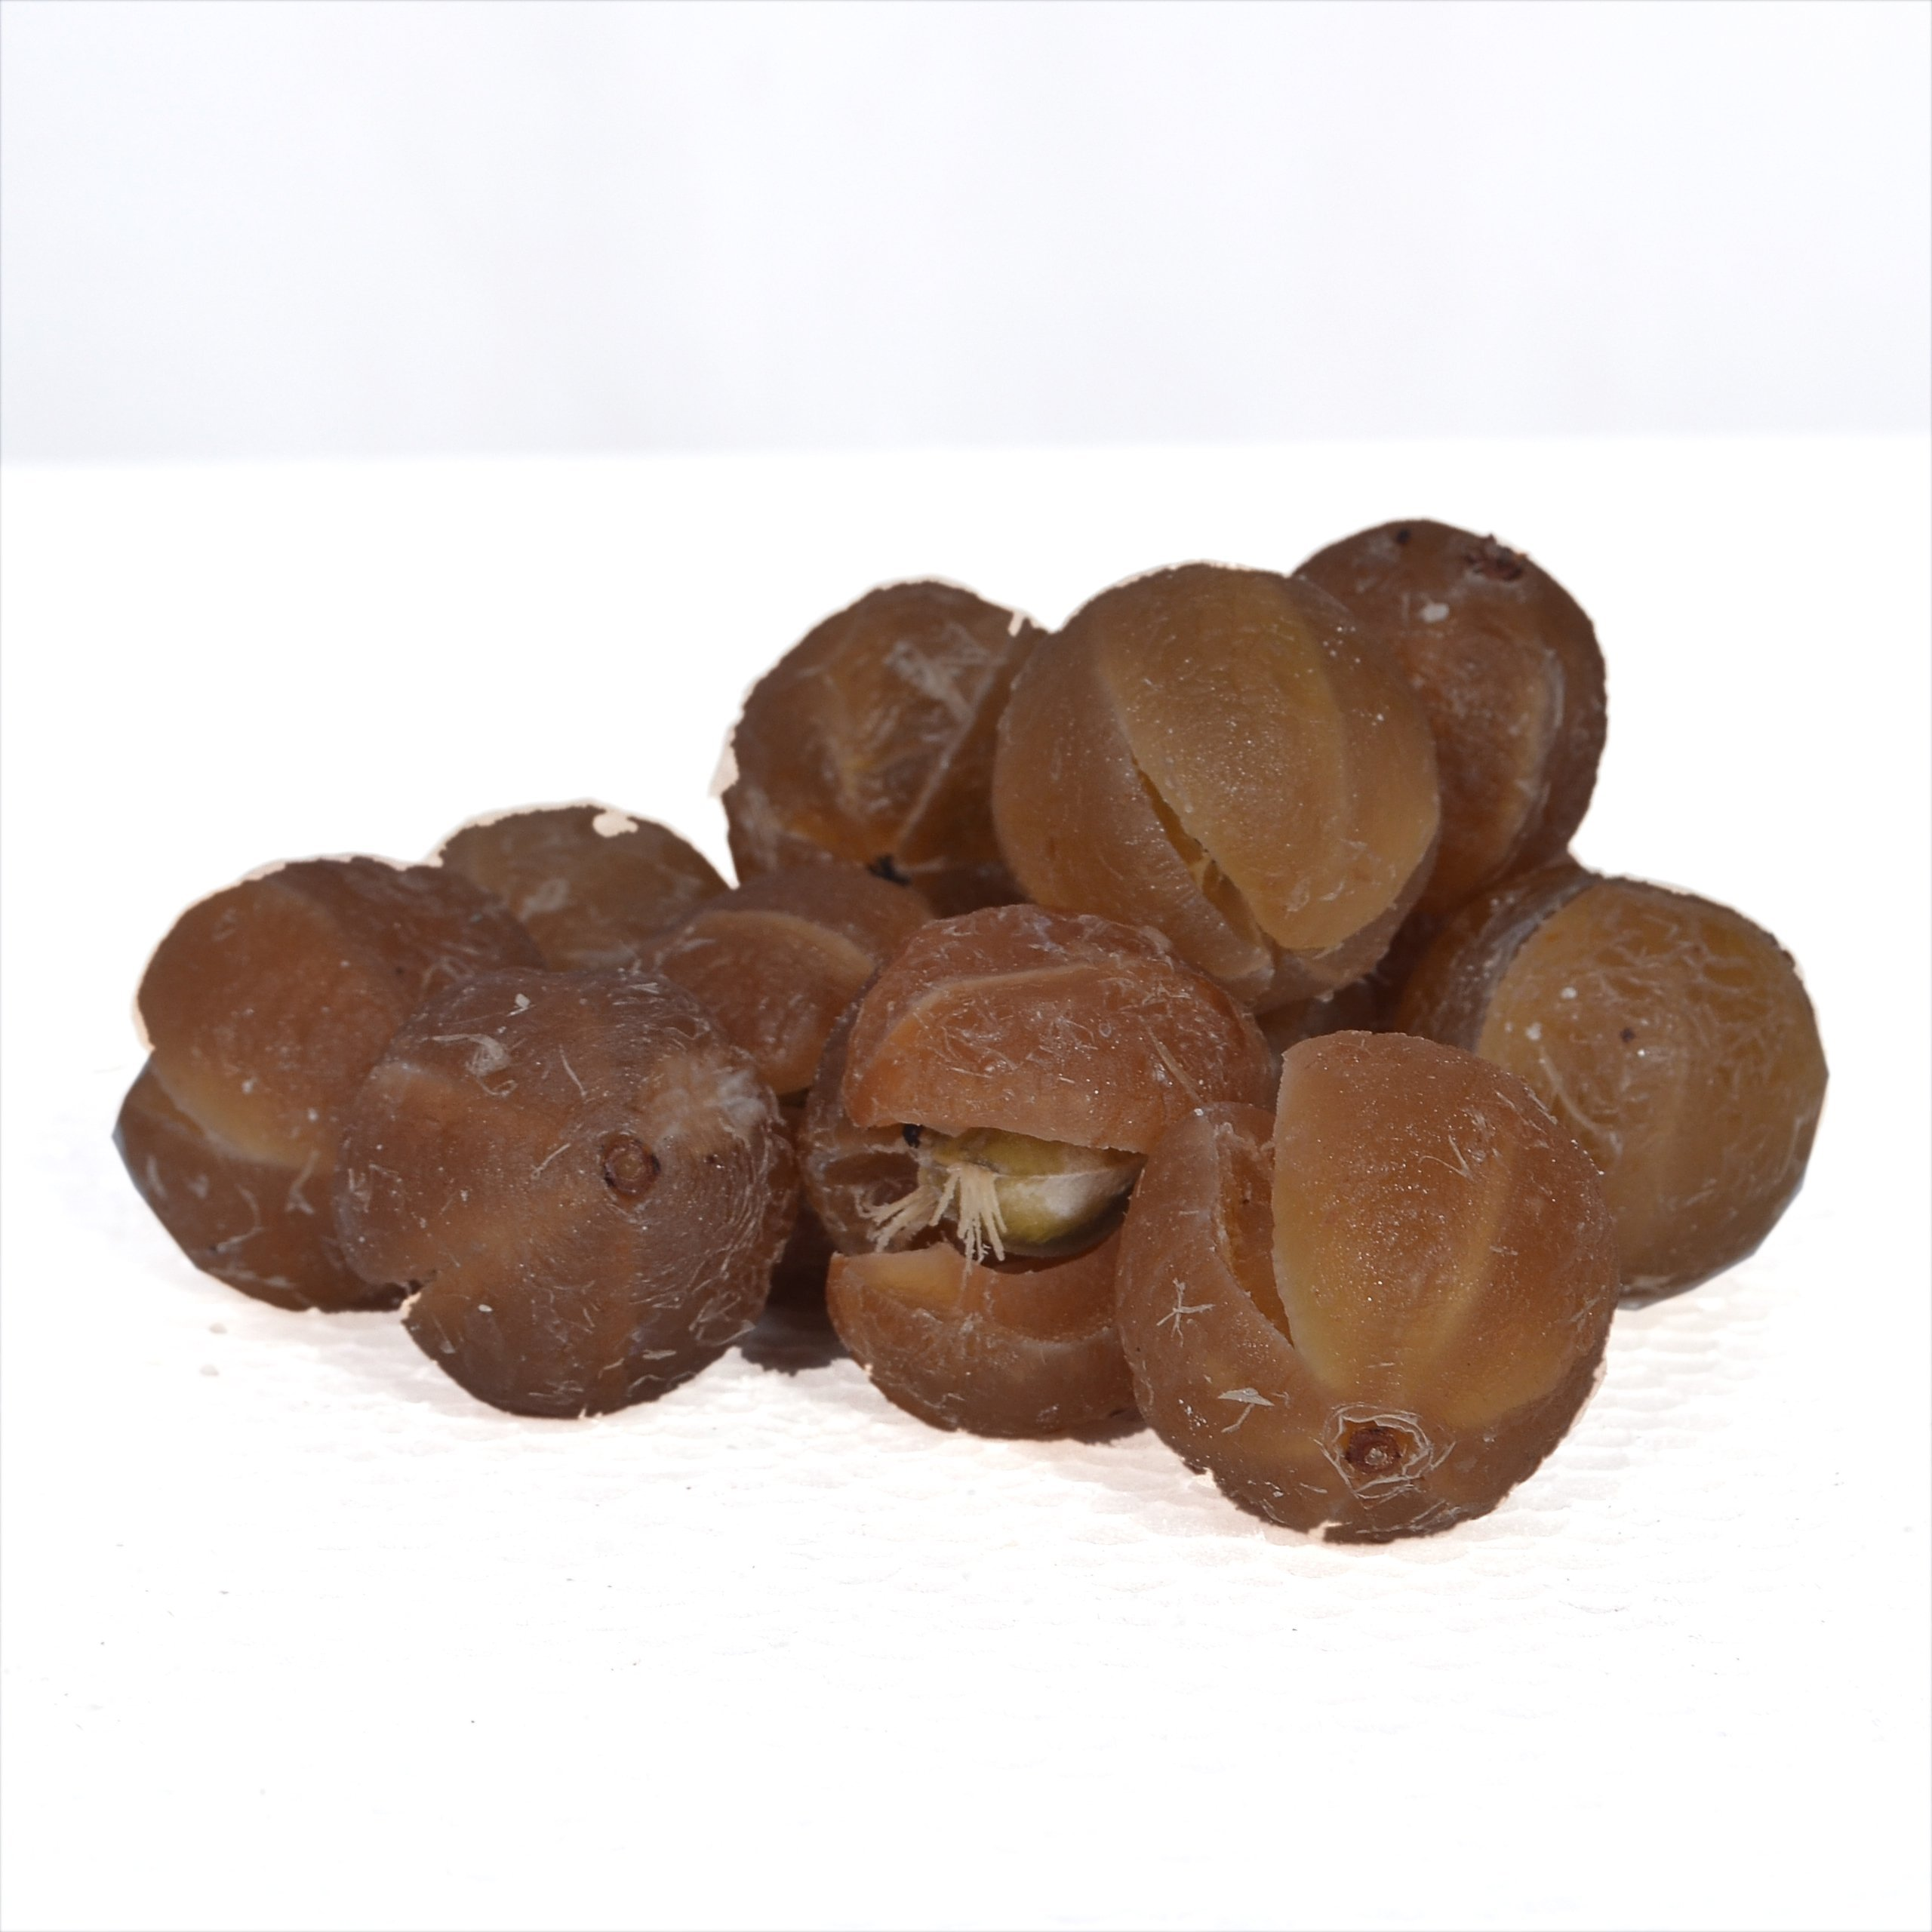 Leeve Dry Fruits Sweet Whole Amla - 400 Gms by Leeve Dry Fruits (Image #4)